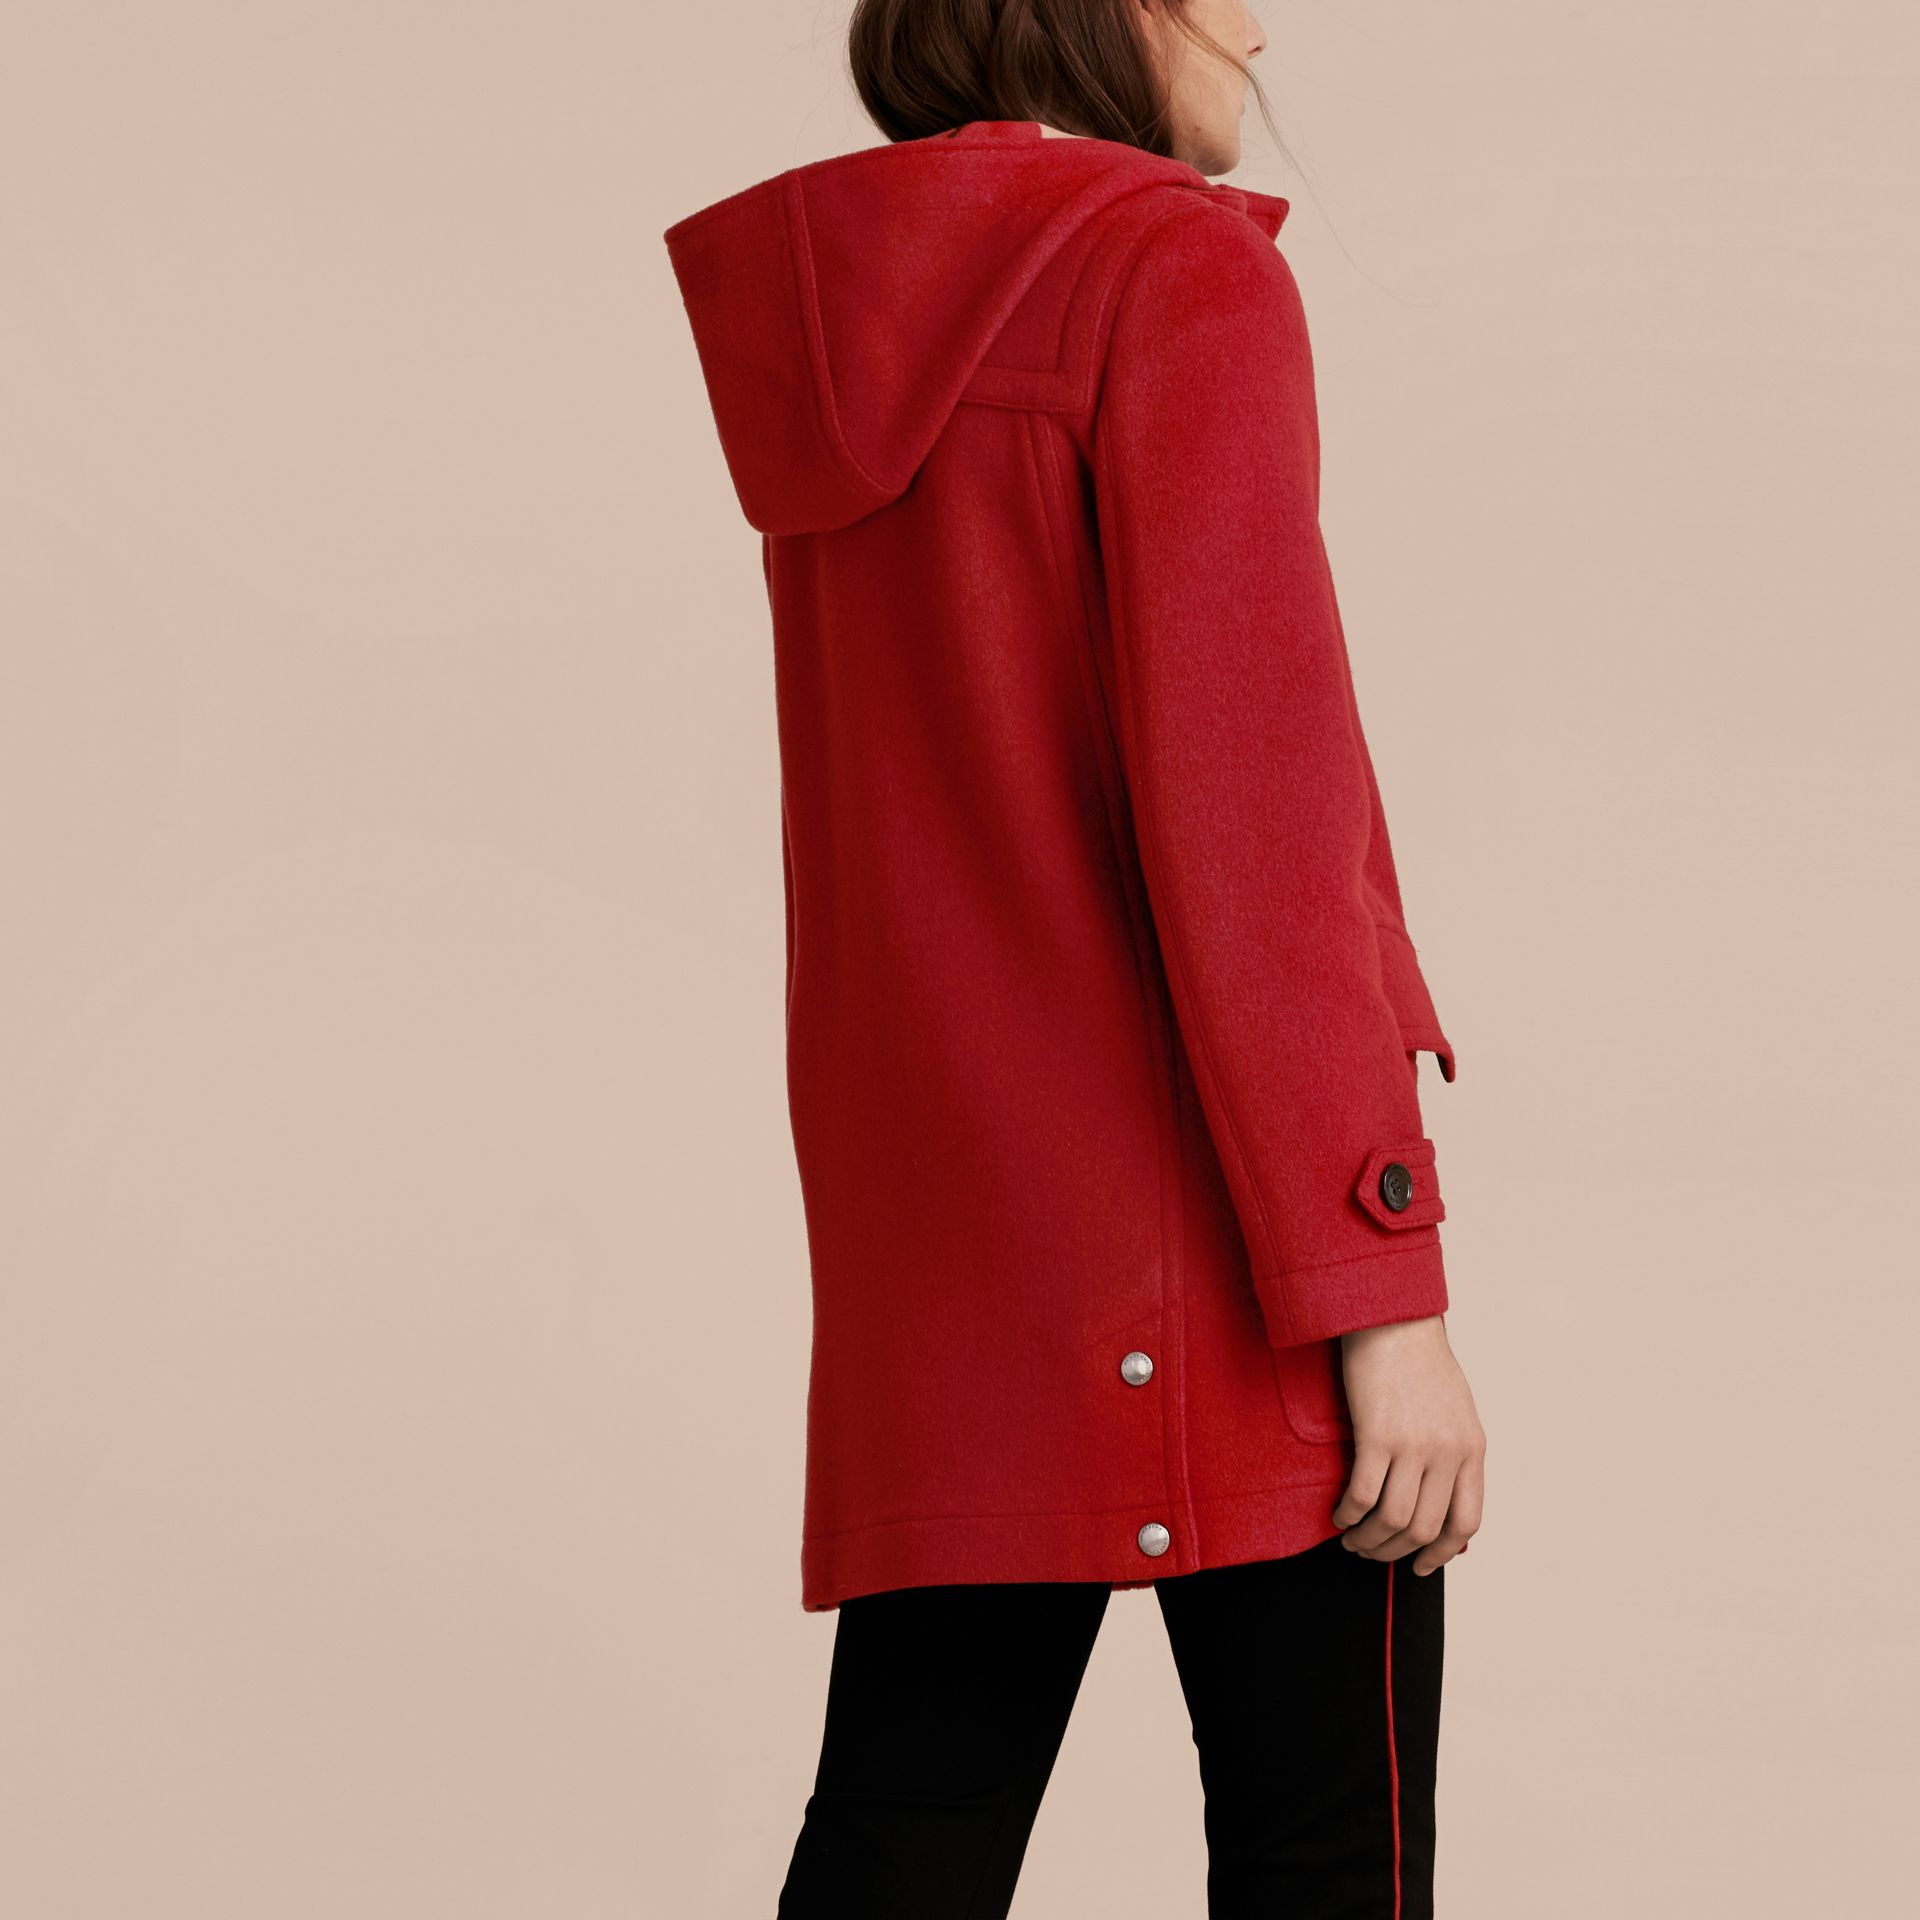 Windsor red Wool Duffle Coat with Check and Hearts Lining Windsor Red - gallery image 3